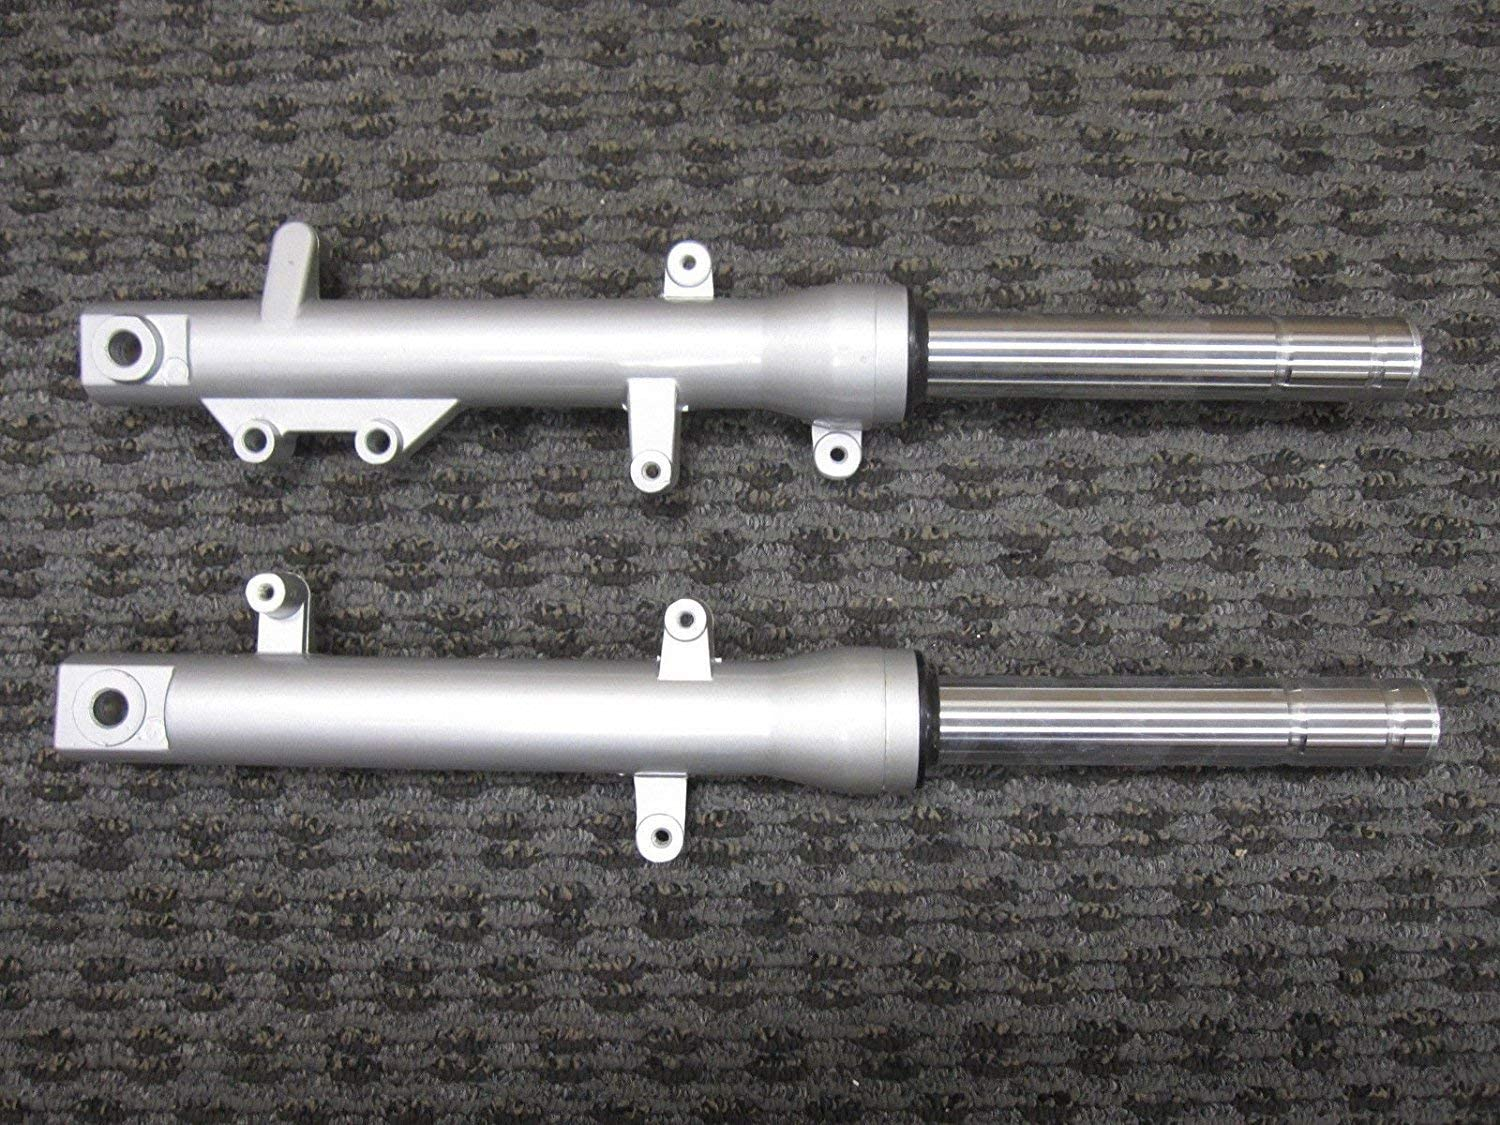 Chinese Parts Scooter Front Shock Absorber 150cc GY6 Eagle Moped